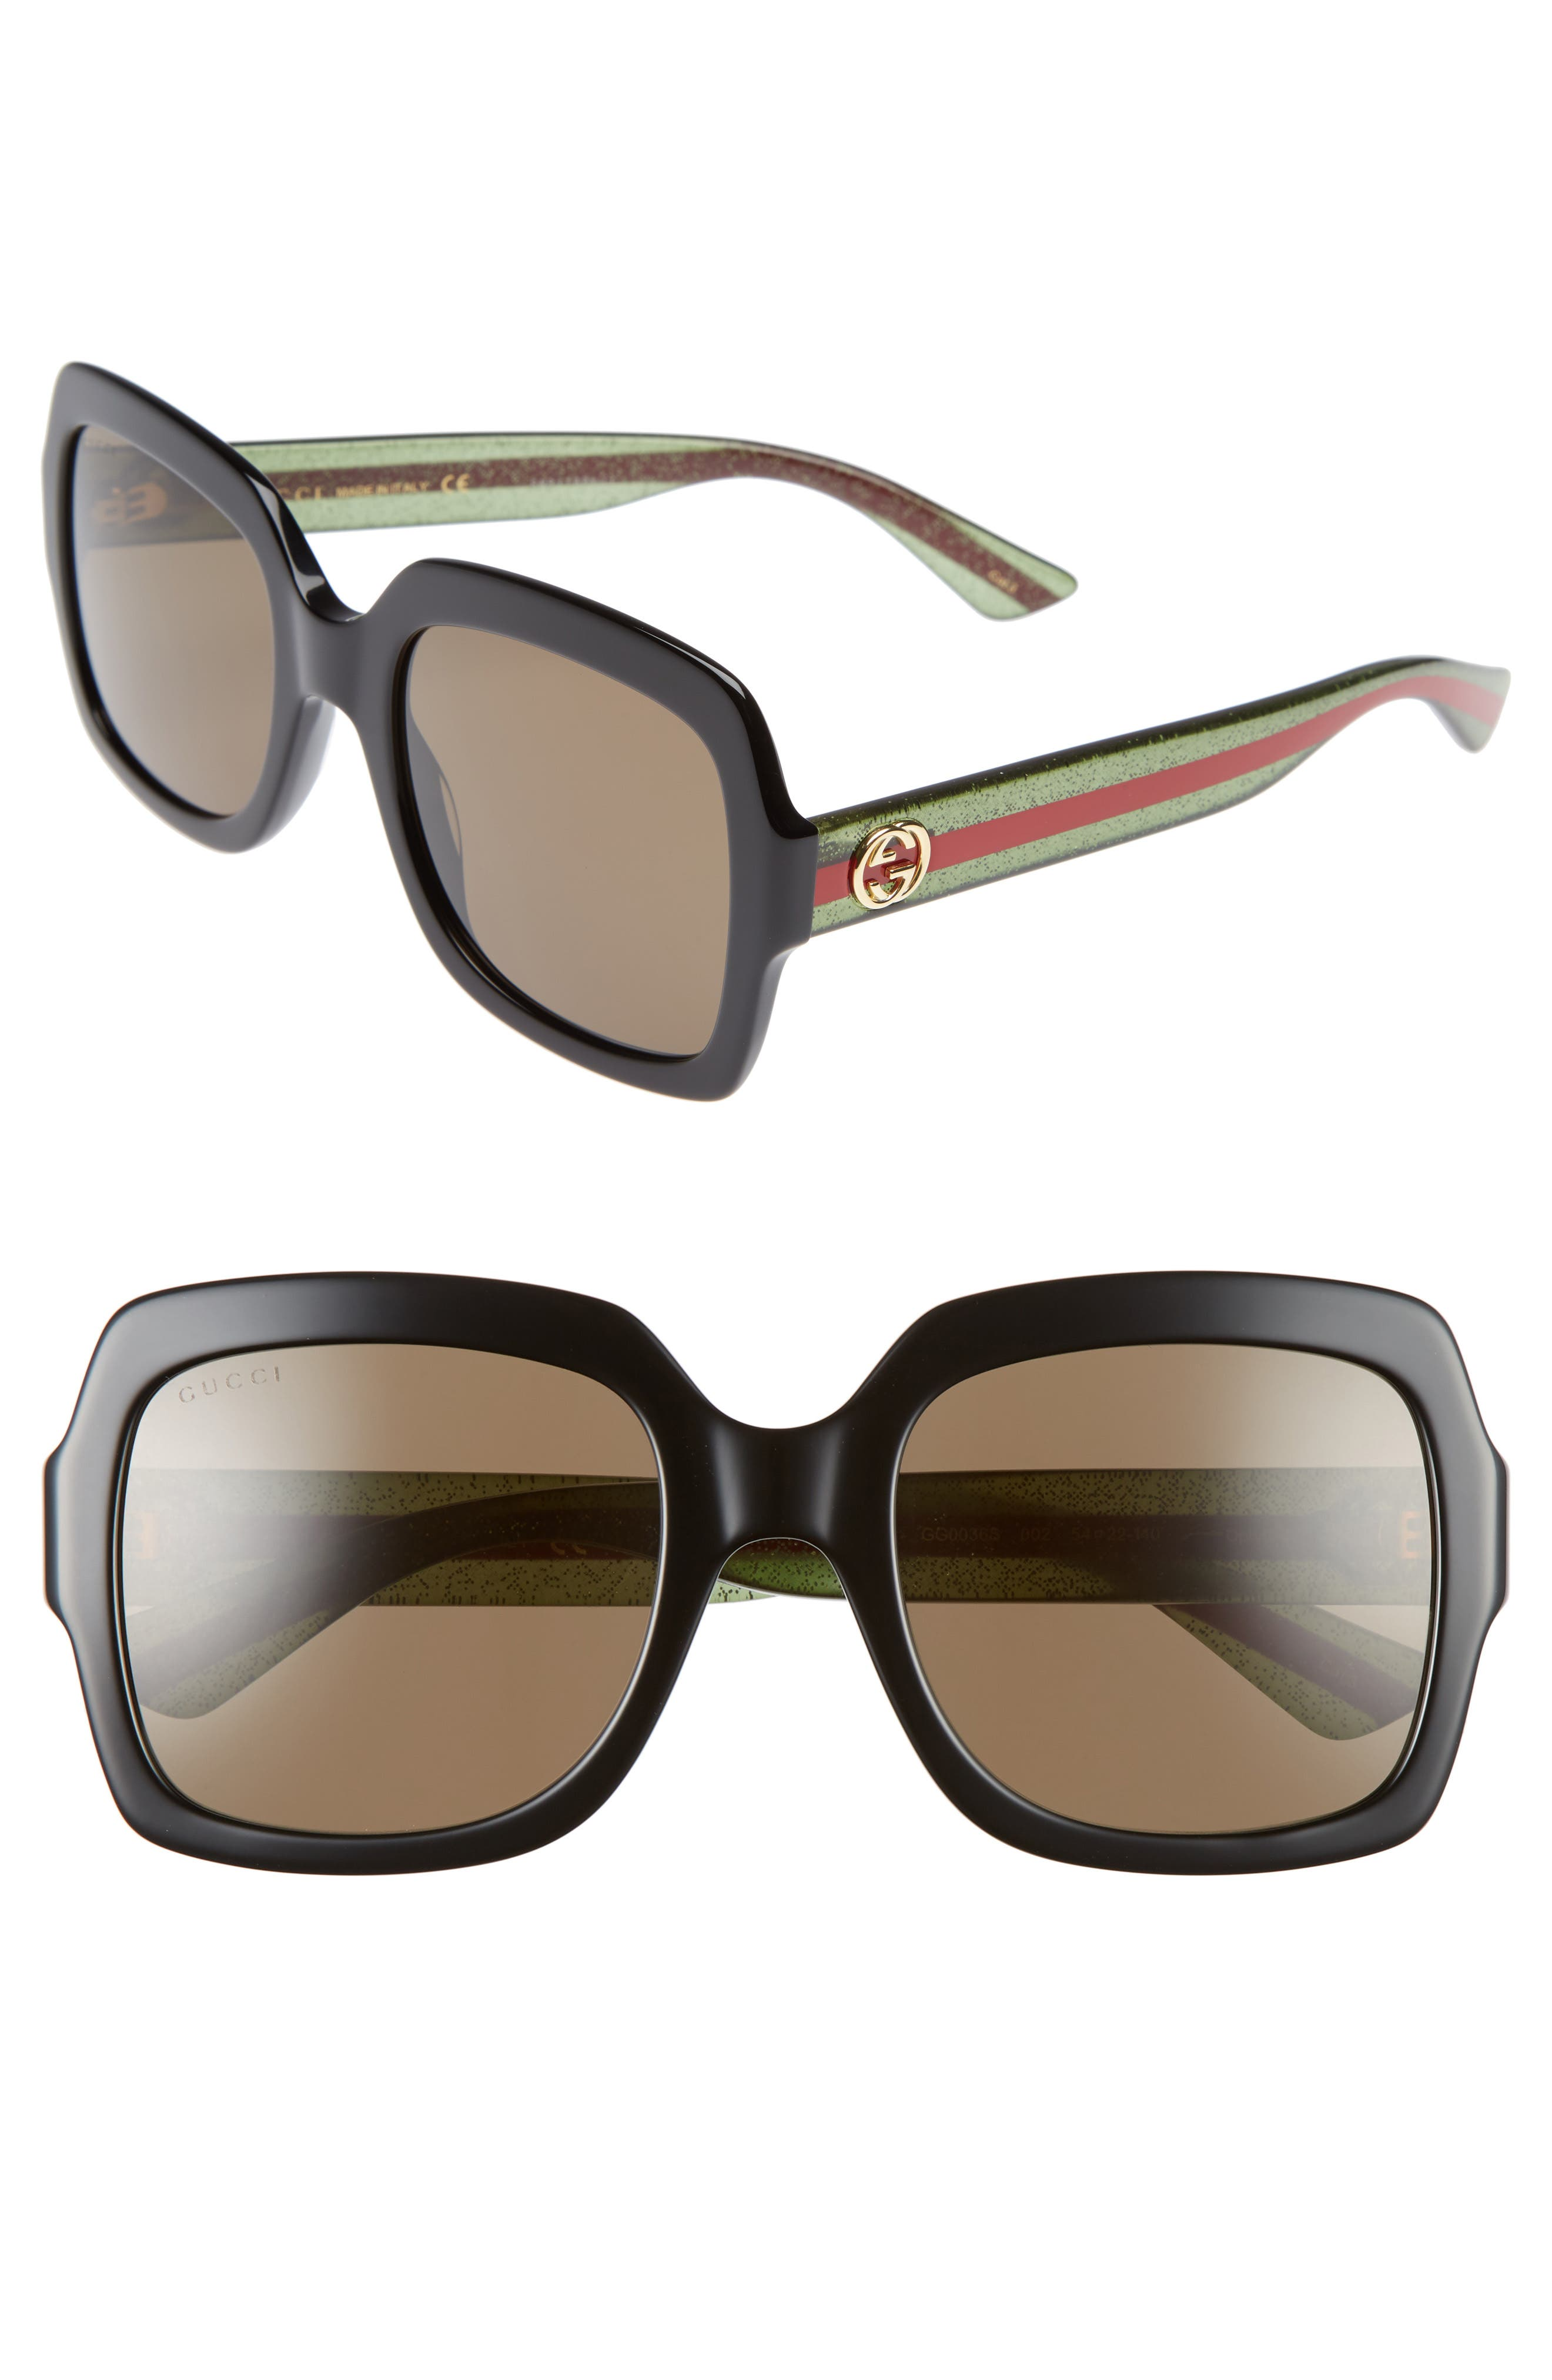 54mm Square Sunglasses,                             Main thumbnail 1, color,                             Black/ Brown